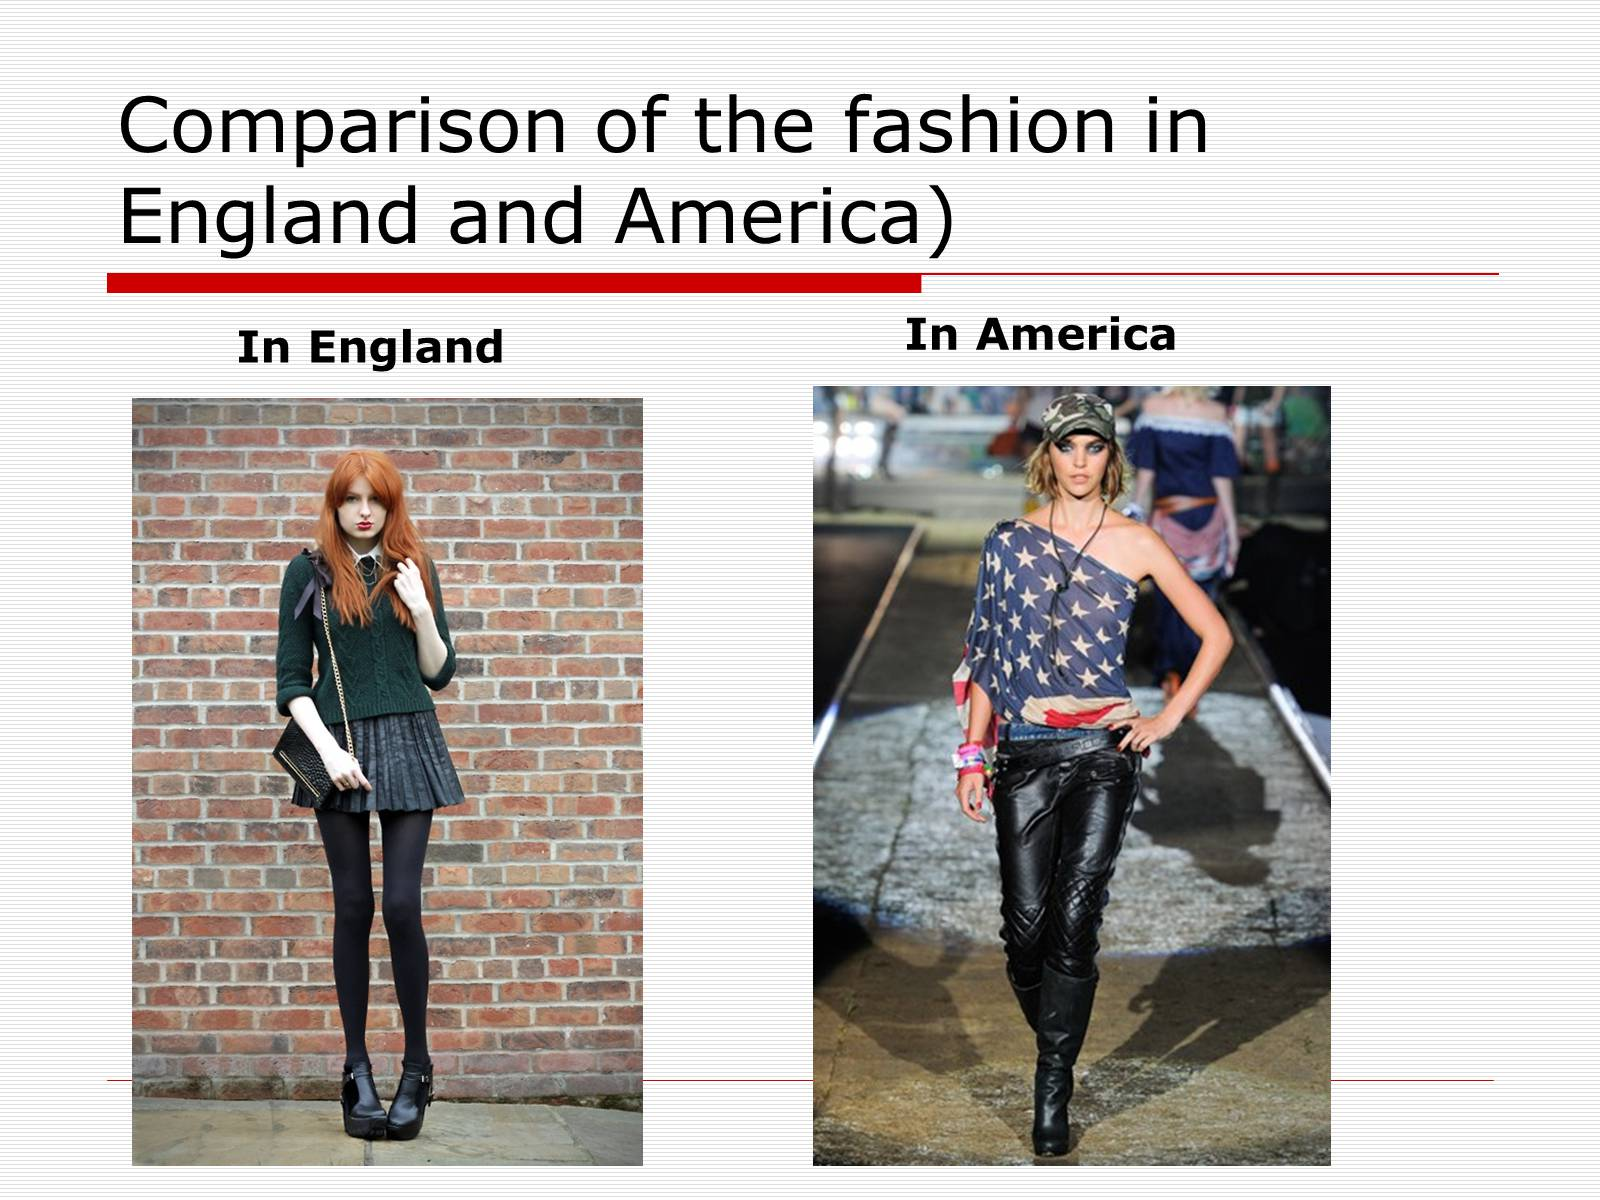 Презентація на тему «Comparison of the fashion in England and America» - Слайд #24